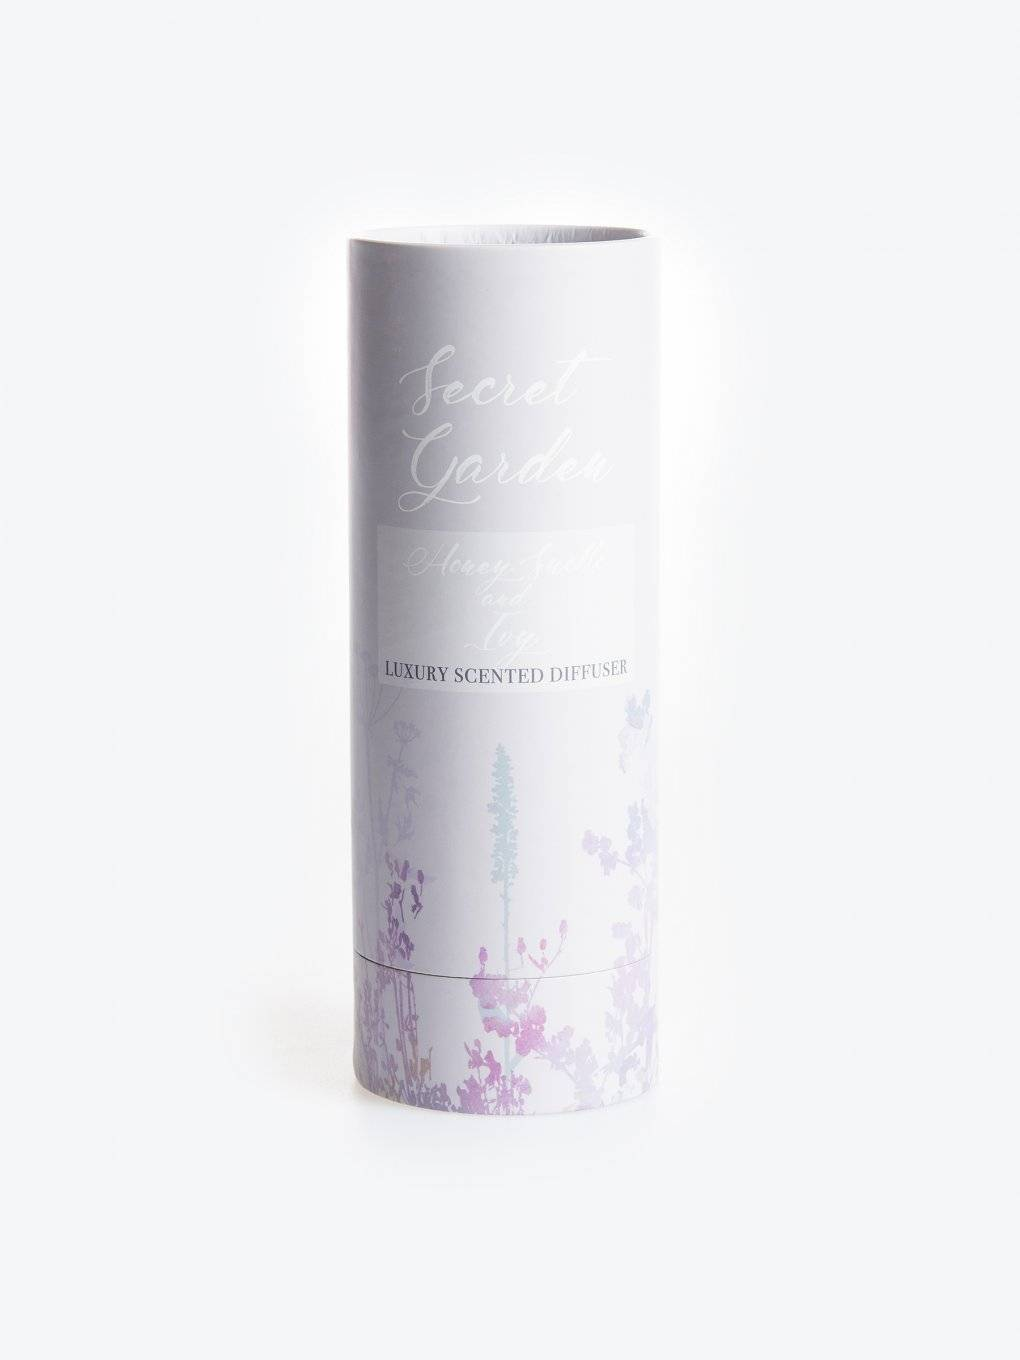 Honeysuckle and ivy scented fragrance diffuser